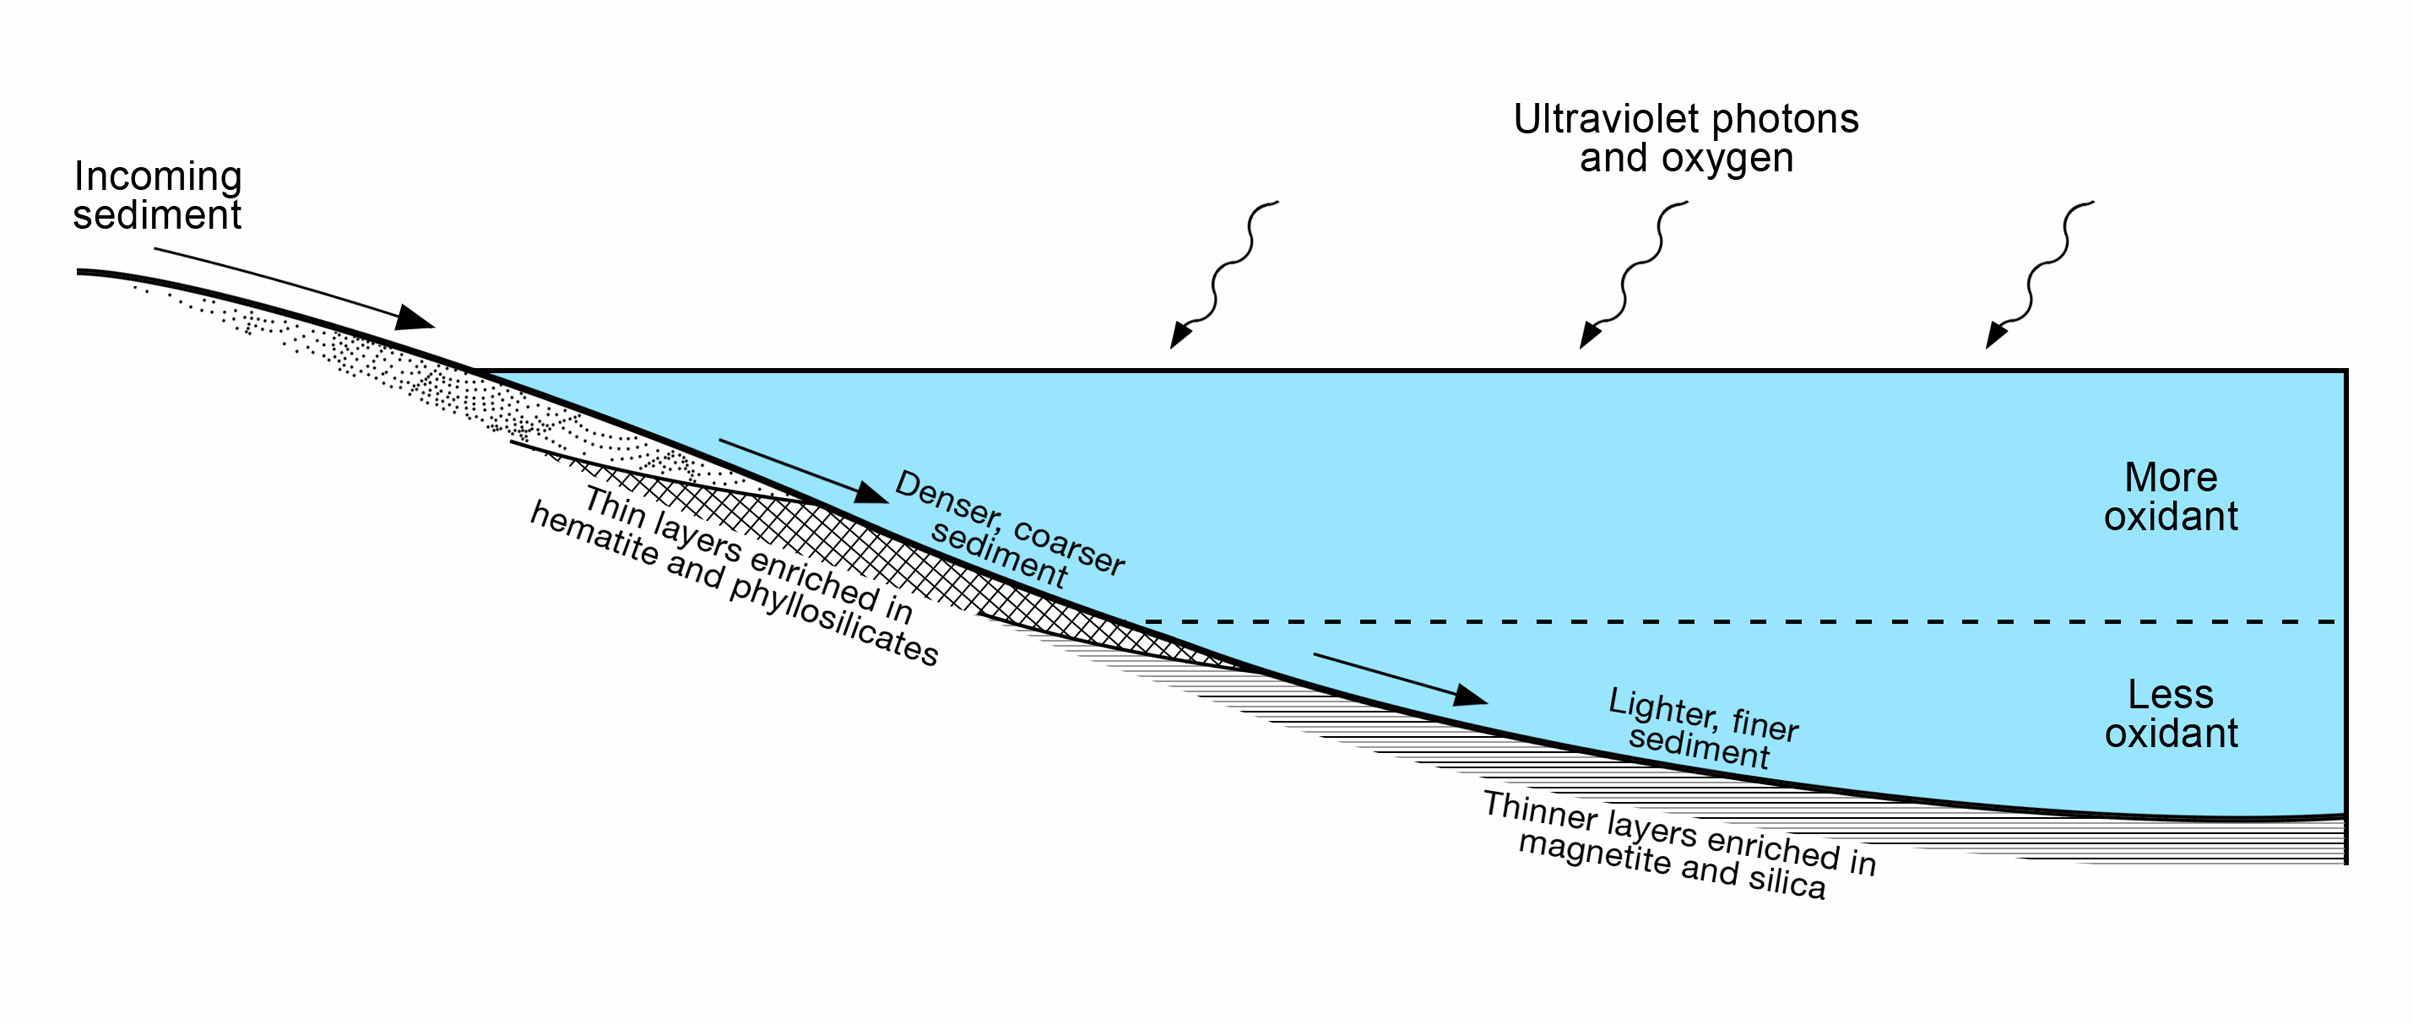 This diagram presents some of the processes and clues related to a long-ago lake on Mars that became stratified, with the shallow water richer in oxidants than deeper water was.